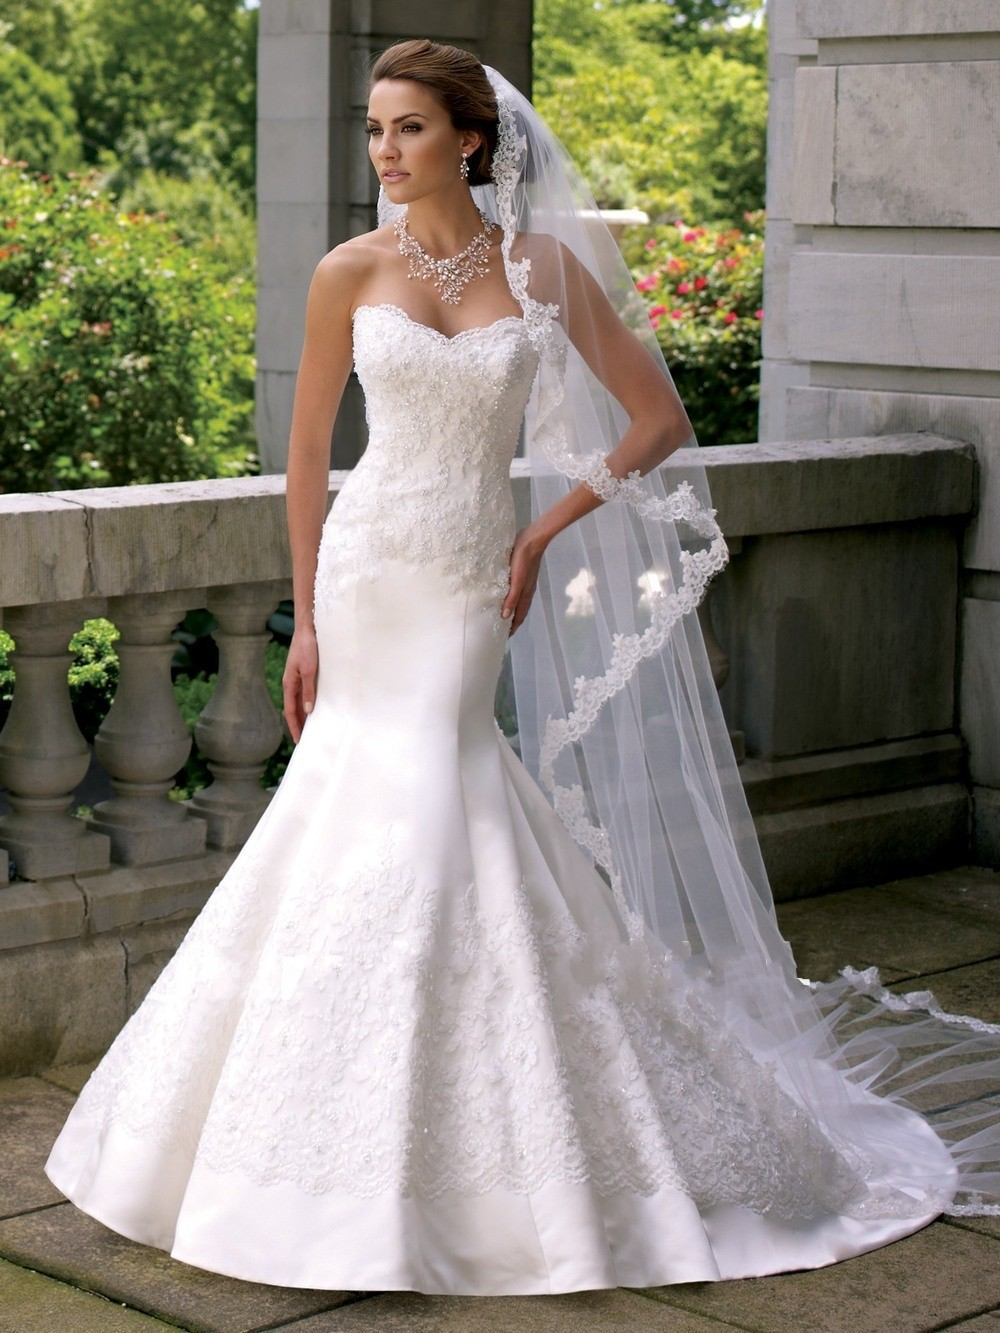 Sweetheart white mermaid wedding dresses satin bridal for Satin mermaid style wedding dresses